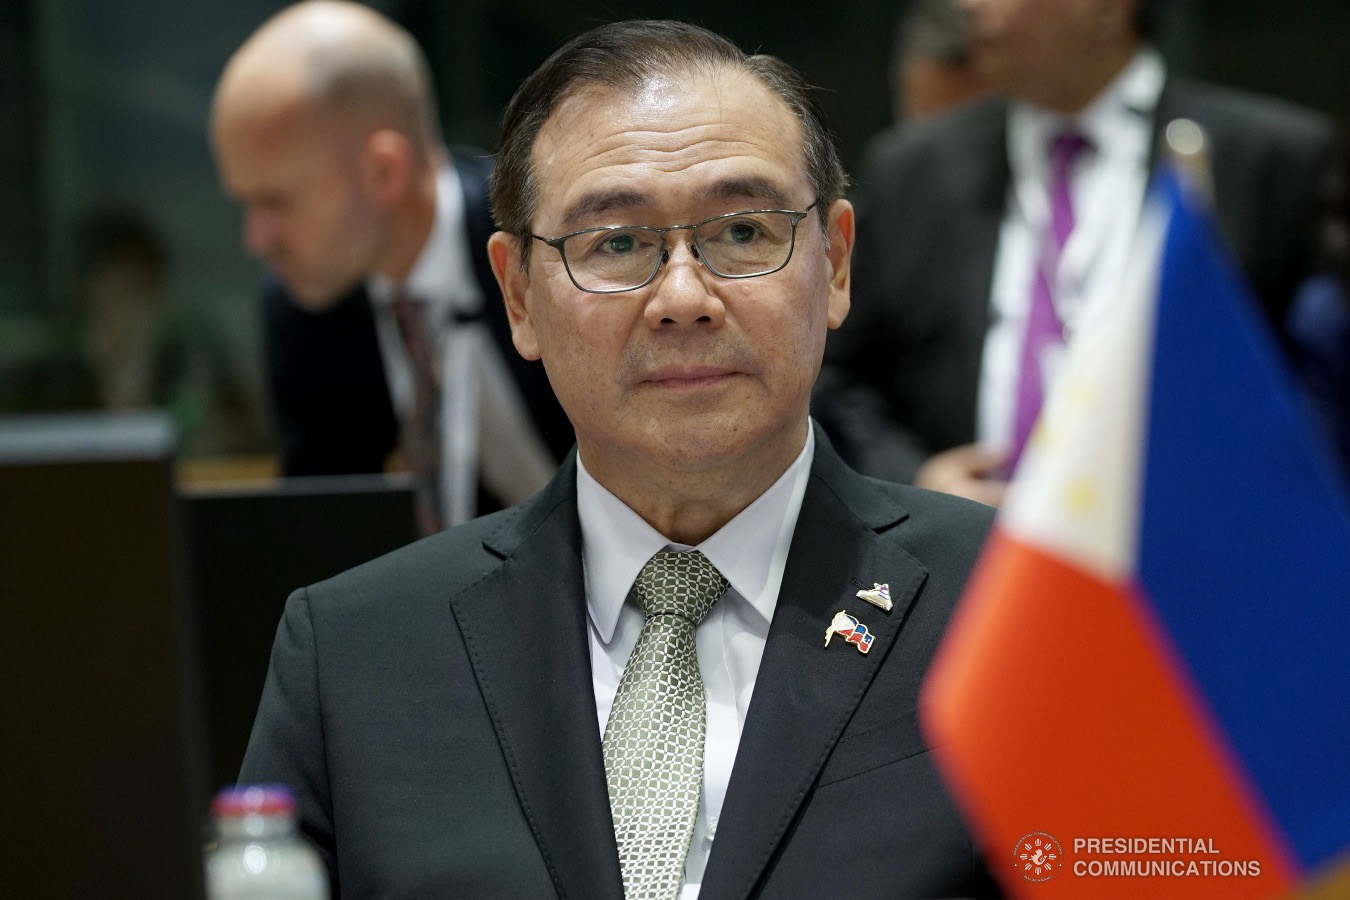 DFA chief Locsin represents President Duterte at 12th Asia-Europe meeting in Brussels